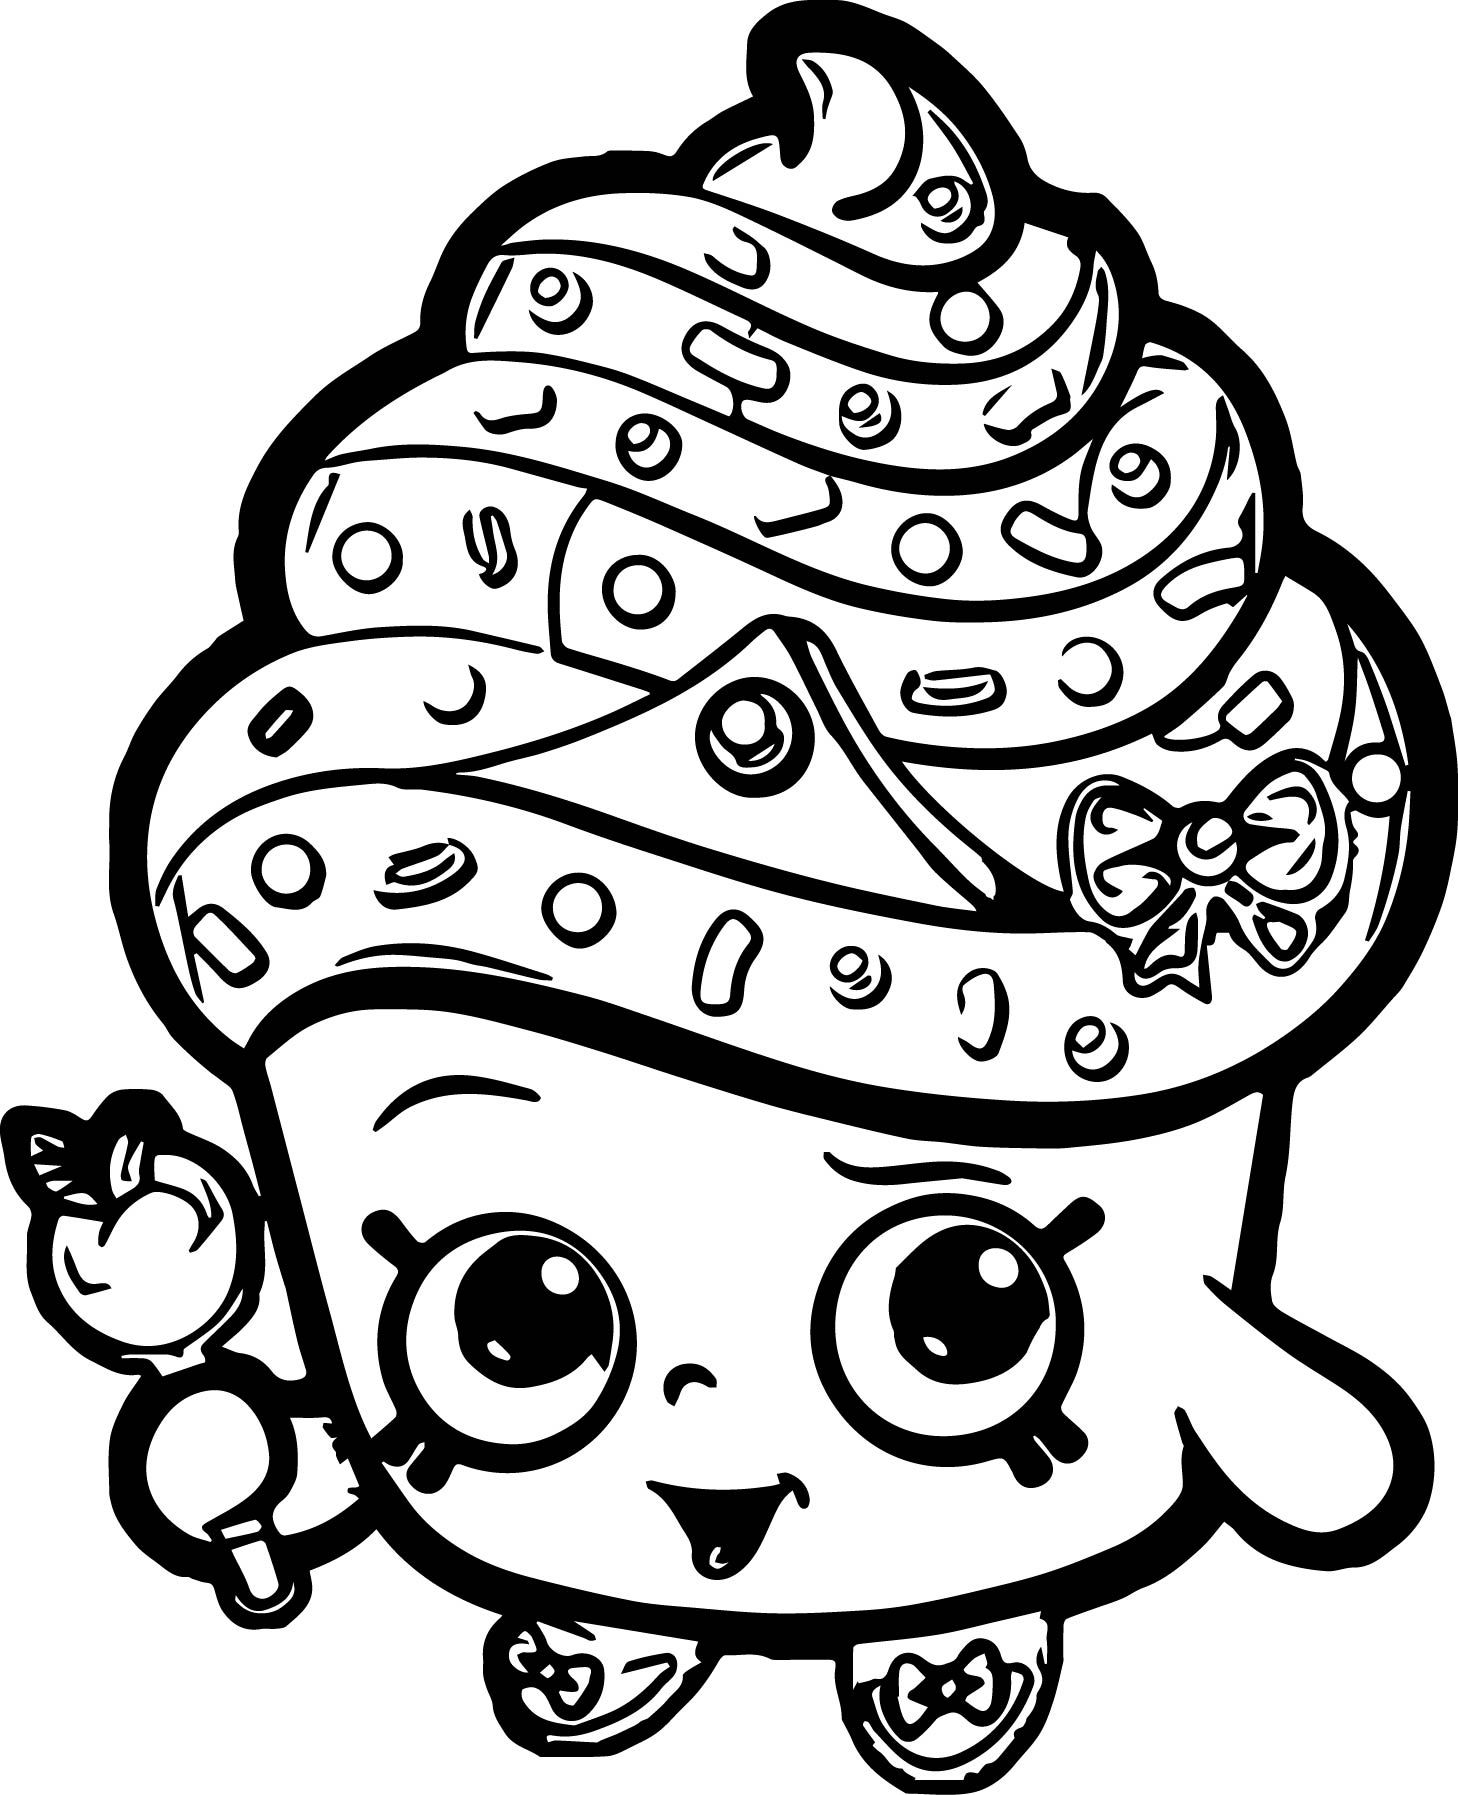 Pin by Starrla Opferman on Coloring pages Shopkins